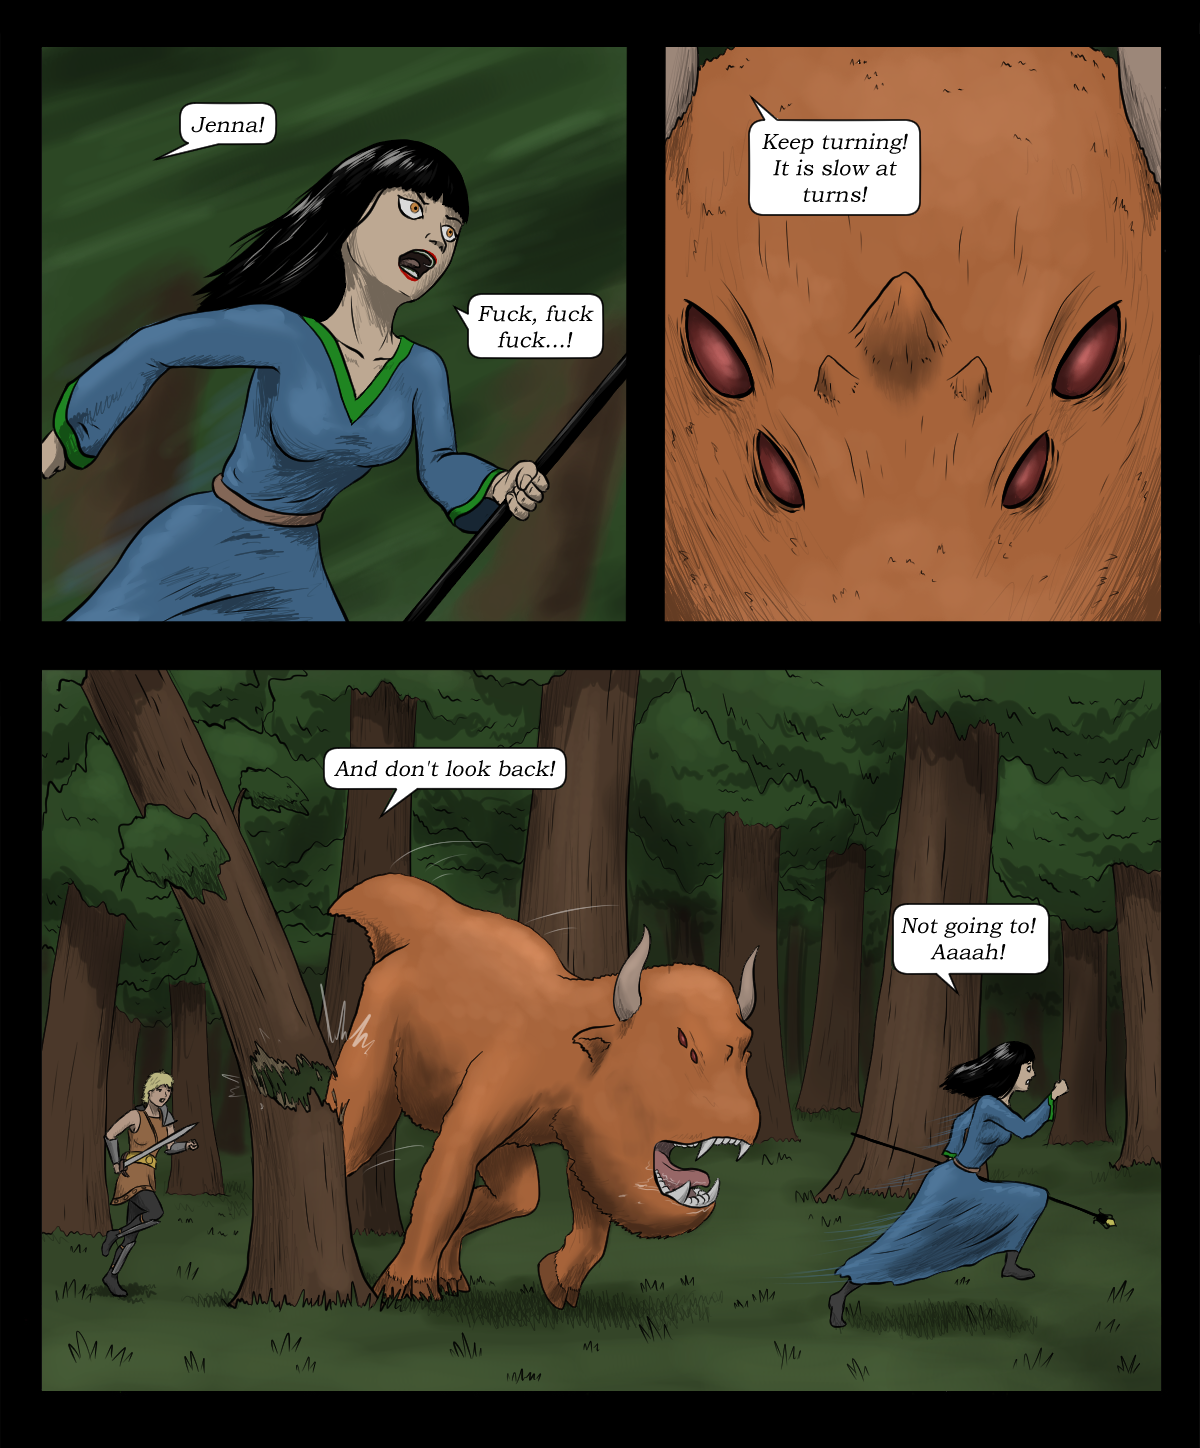 Page 59 - The beast that ruins the day